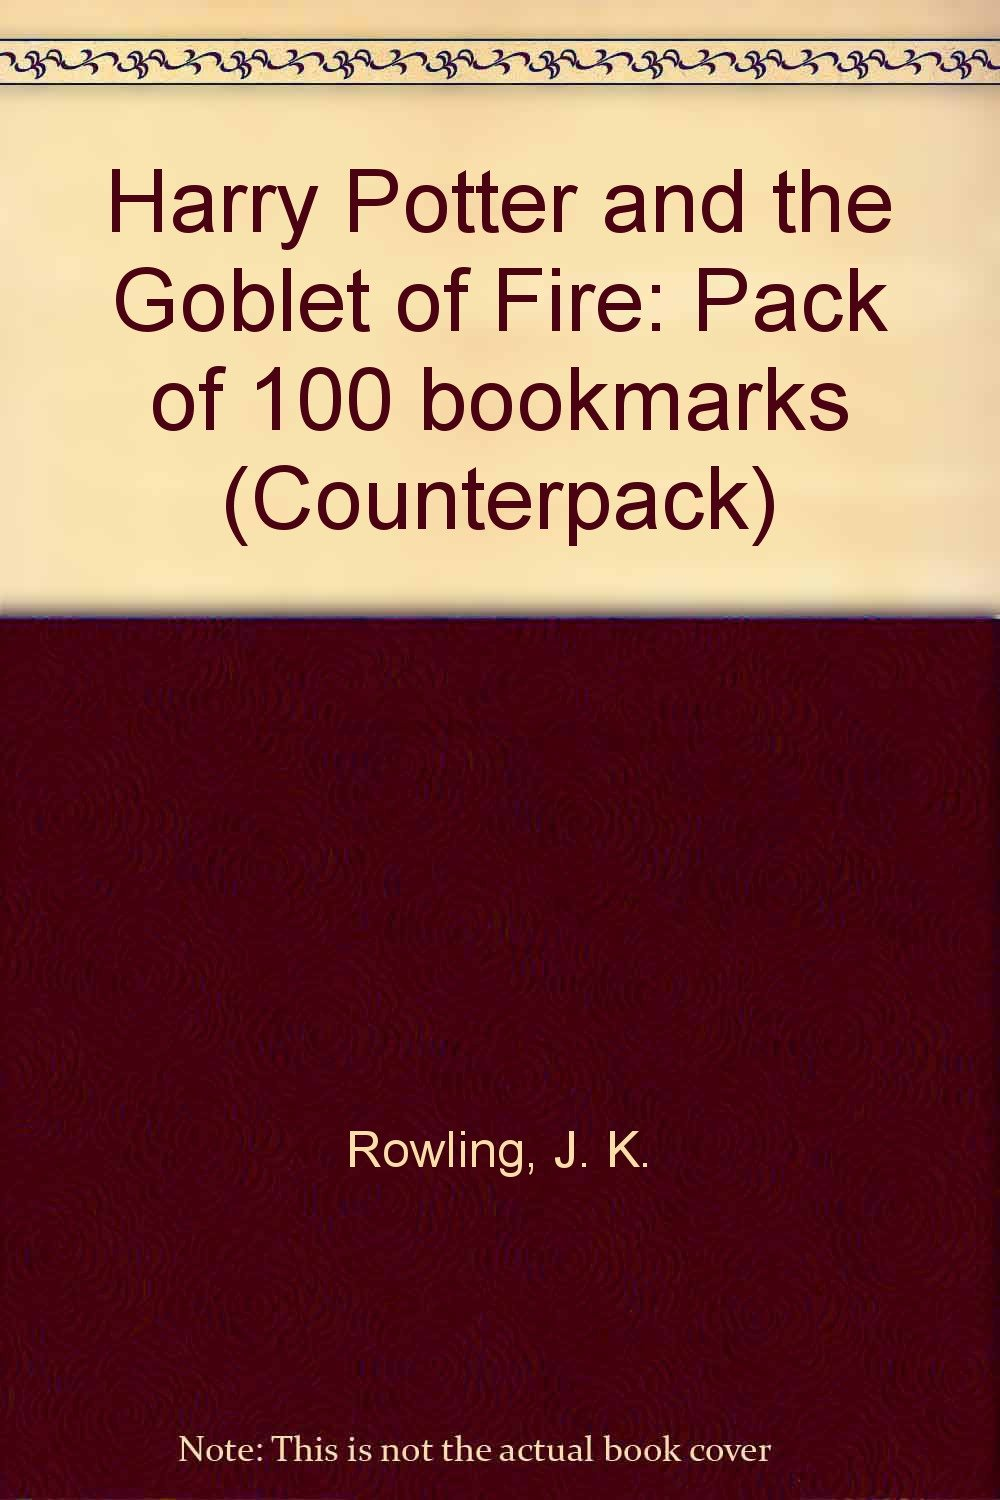 Harry Potter and the Goblet of Fire: Pack of 100 bookmarks ...